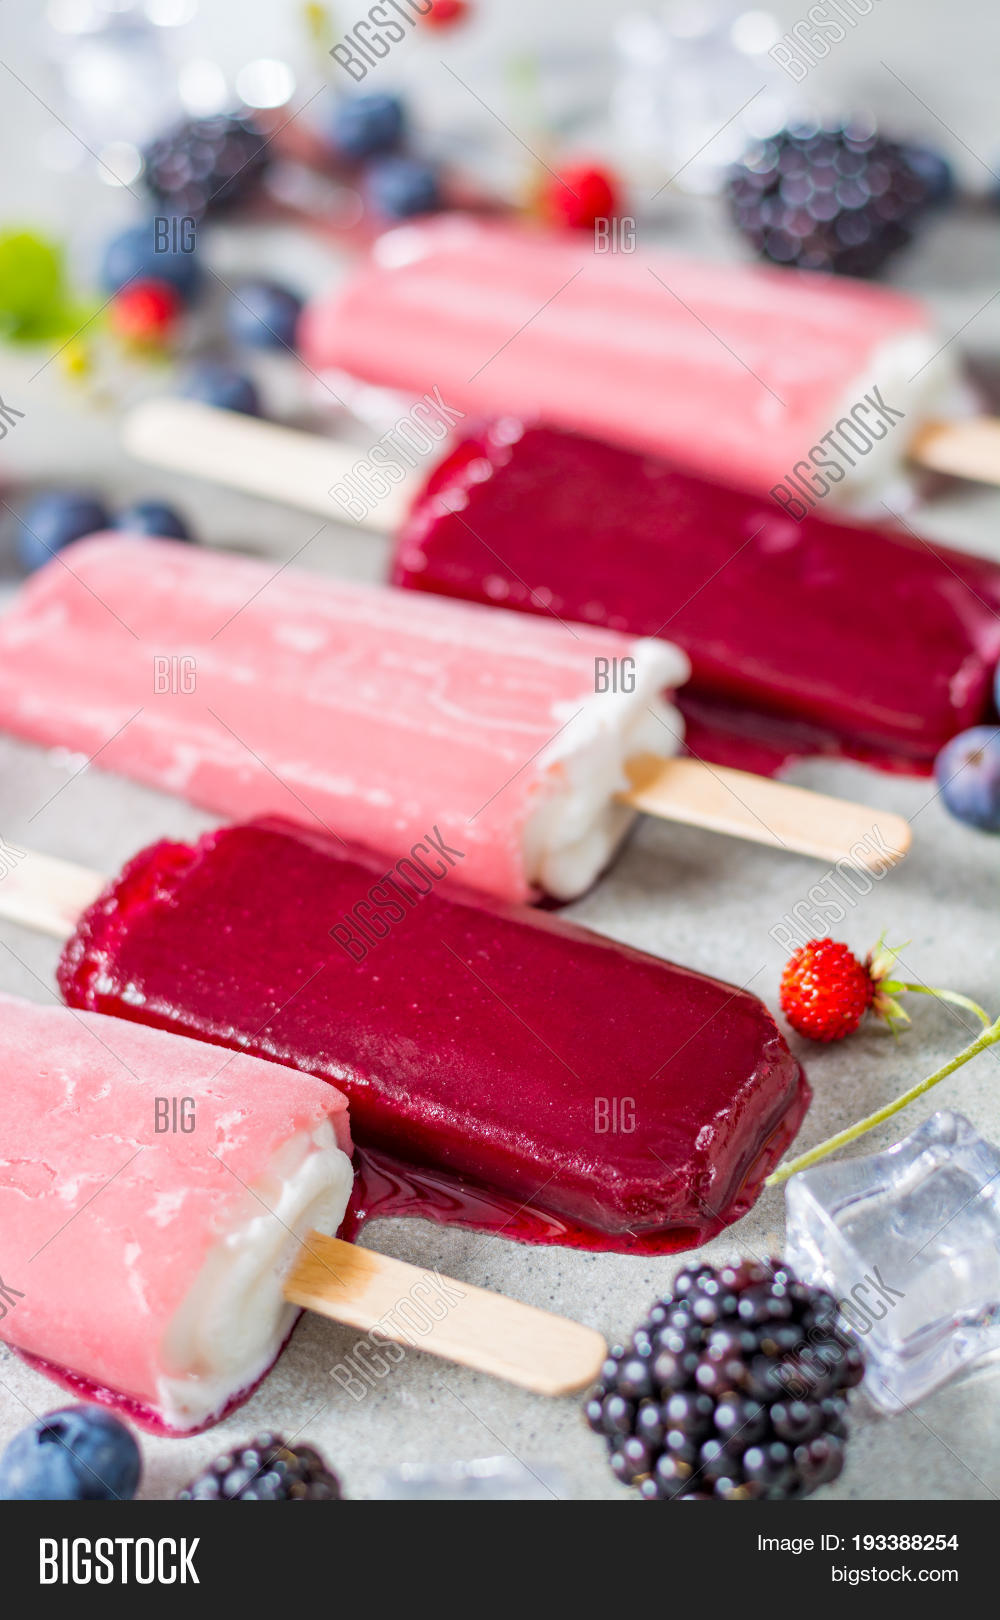 berry,blackberry,blueberry,brambleberry,cold,color,colorful,cream,dessert,dish,eat,food,forest,frozen,fruit,harvest,healthy,home,ice,leaves,made,organic,pick,plate,popsicle,produce,recipe,red,sorbet,summer,tasty,vitamin,wild,wood